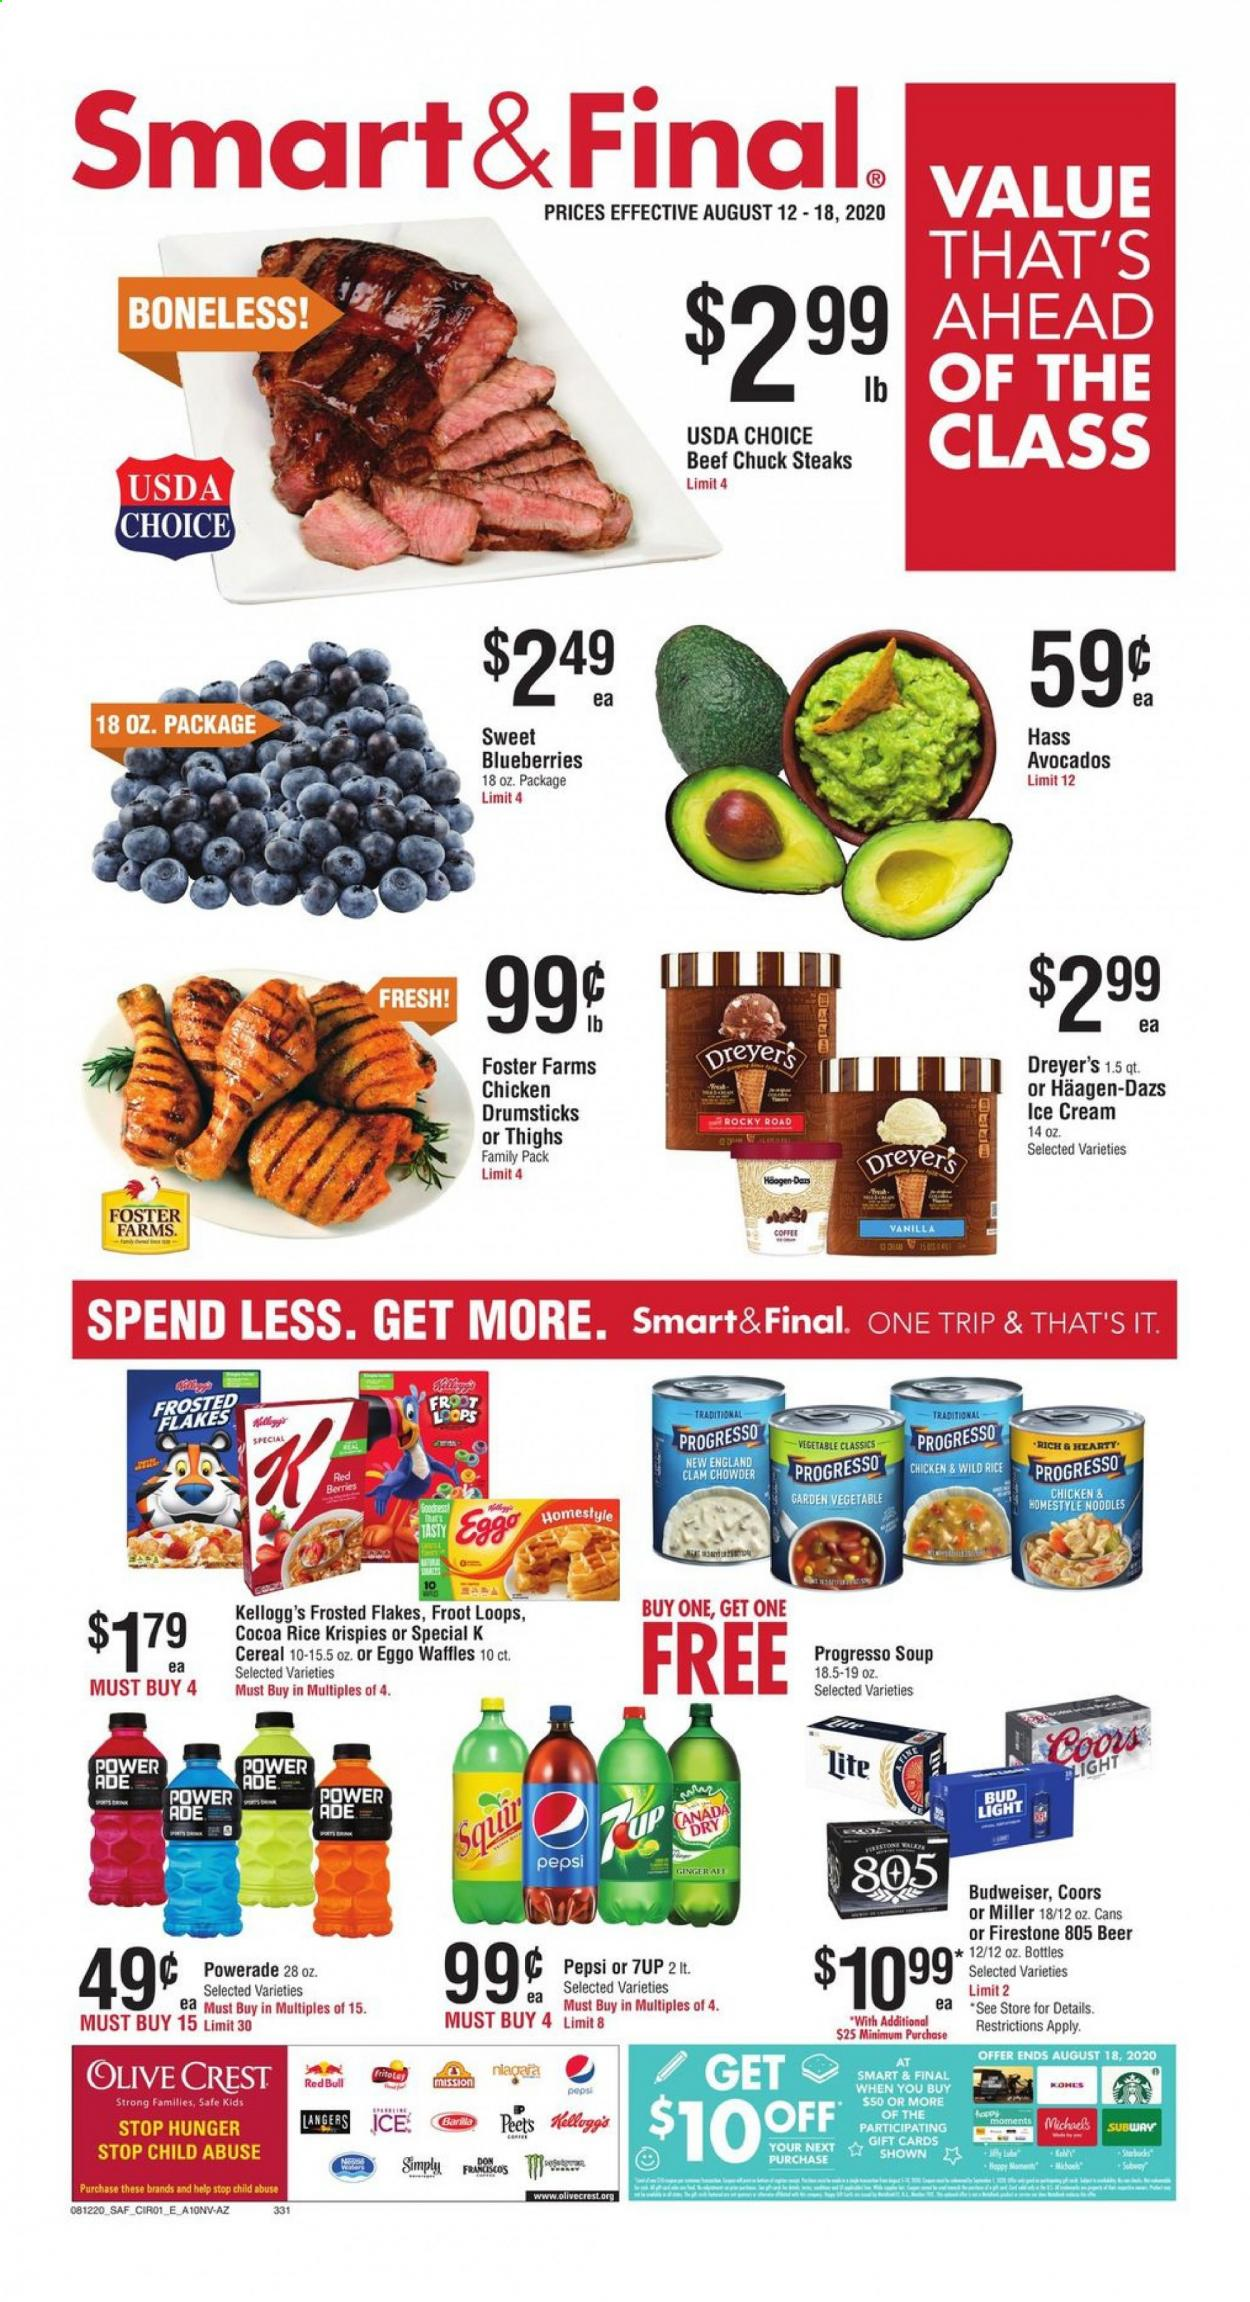 Smart & Final Flyer - 08.12.2020 - 08.18.2020 - Sales products - avocado, beef meat, beer, blueberries, budweiser, canada dry, cereals, cocoa, coffee, crest, firestone, ginger, rice, safe, ice cream, powerade, chicken, chicken drumsticks, pepsi, noodles, soup, cereal, bud light, flakes, miller, coors, family pack, vegetable. Page 1.